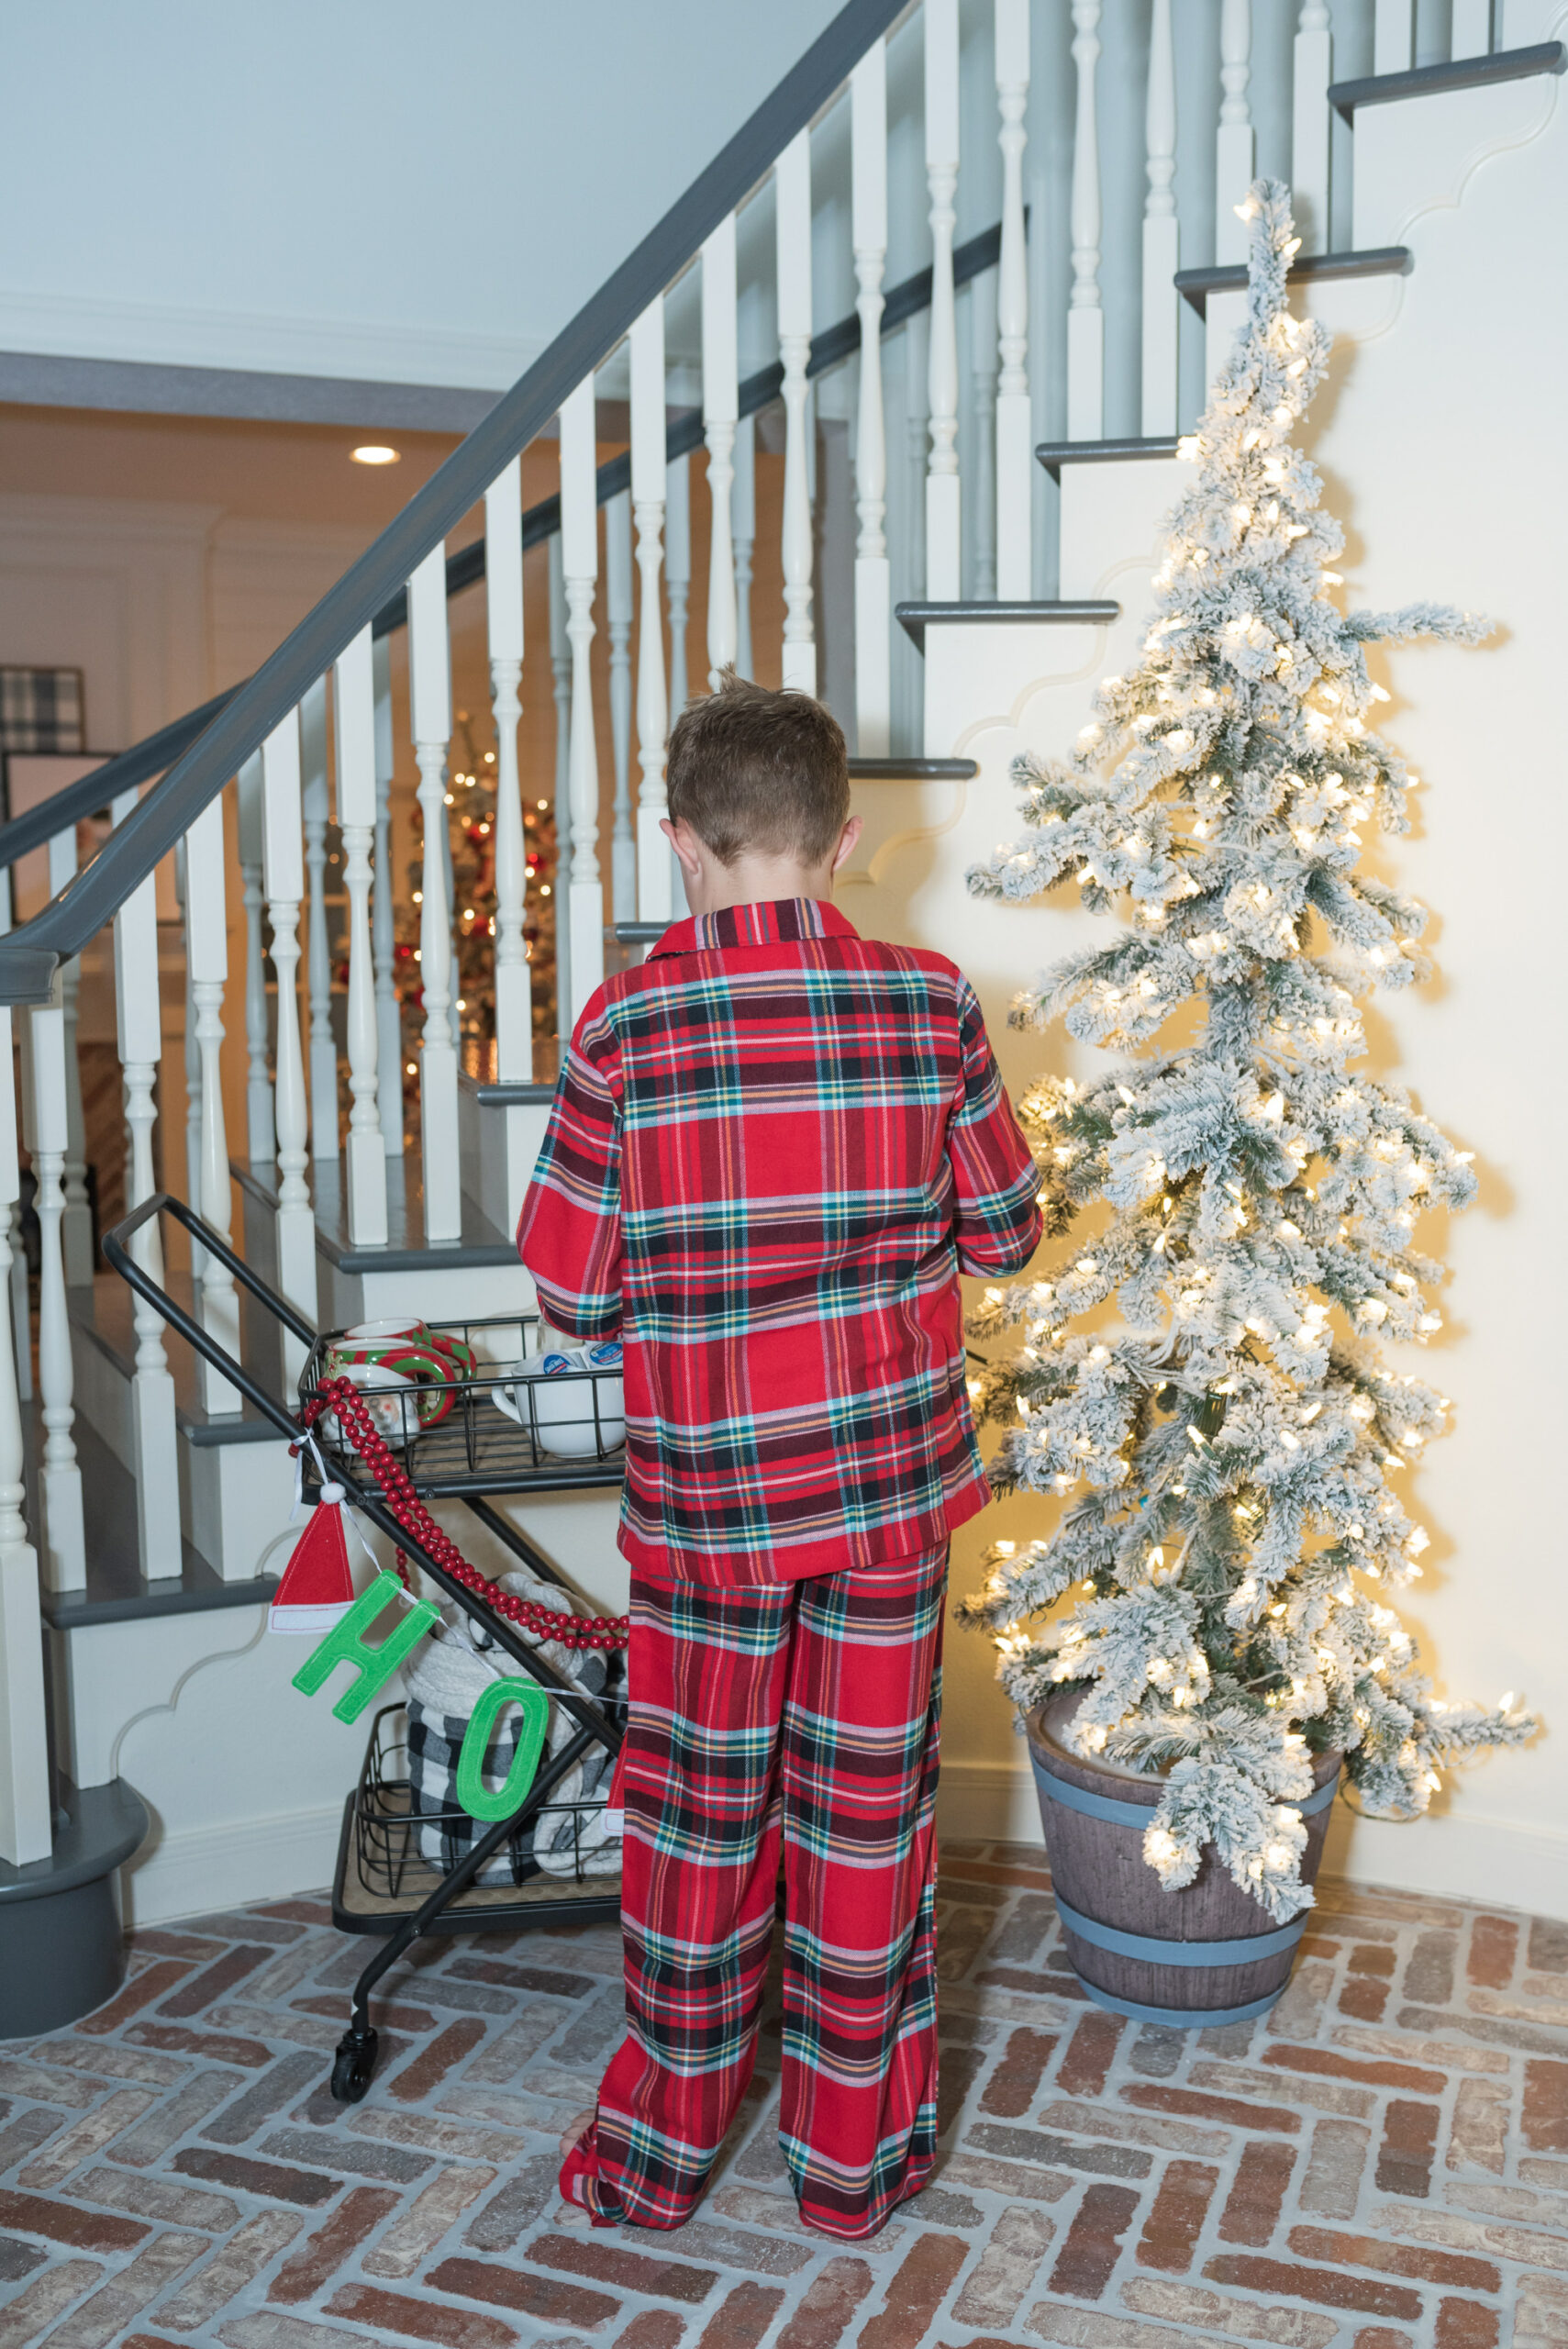 Hot Cocoa Bar by popular Houston lifestyle blog, Fancy Ashley: image of a young boy wearing plaid pajamas and standing next to a black metal bar cart containing a Keurig, Christmas mugs, Christmas garland, mini marshmallows, and coco pods.